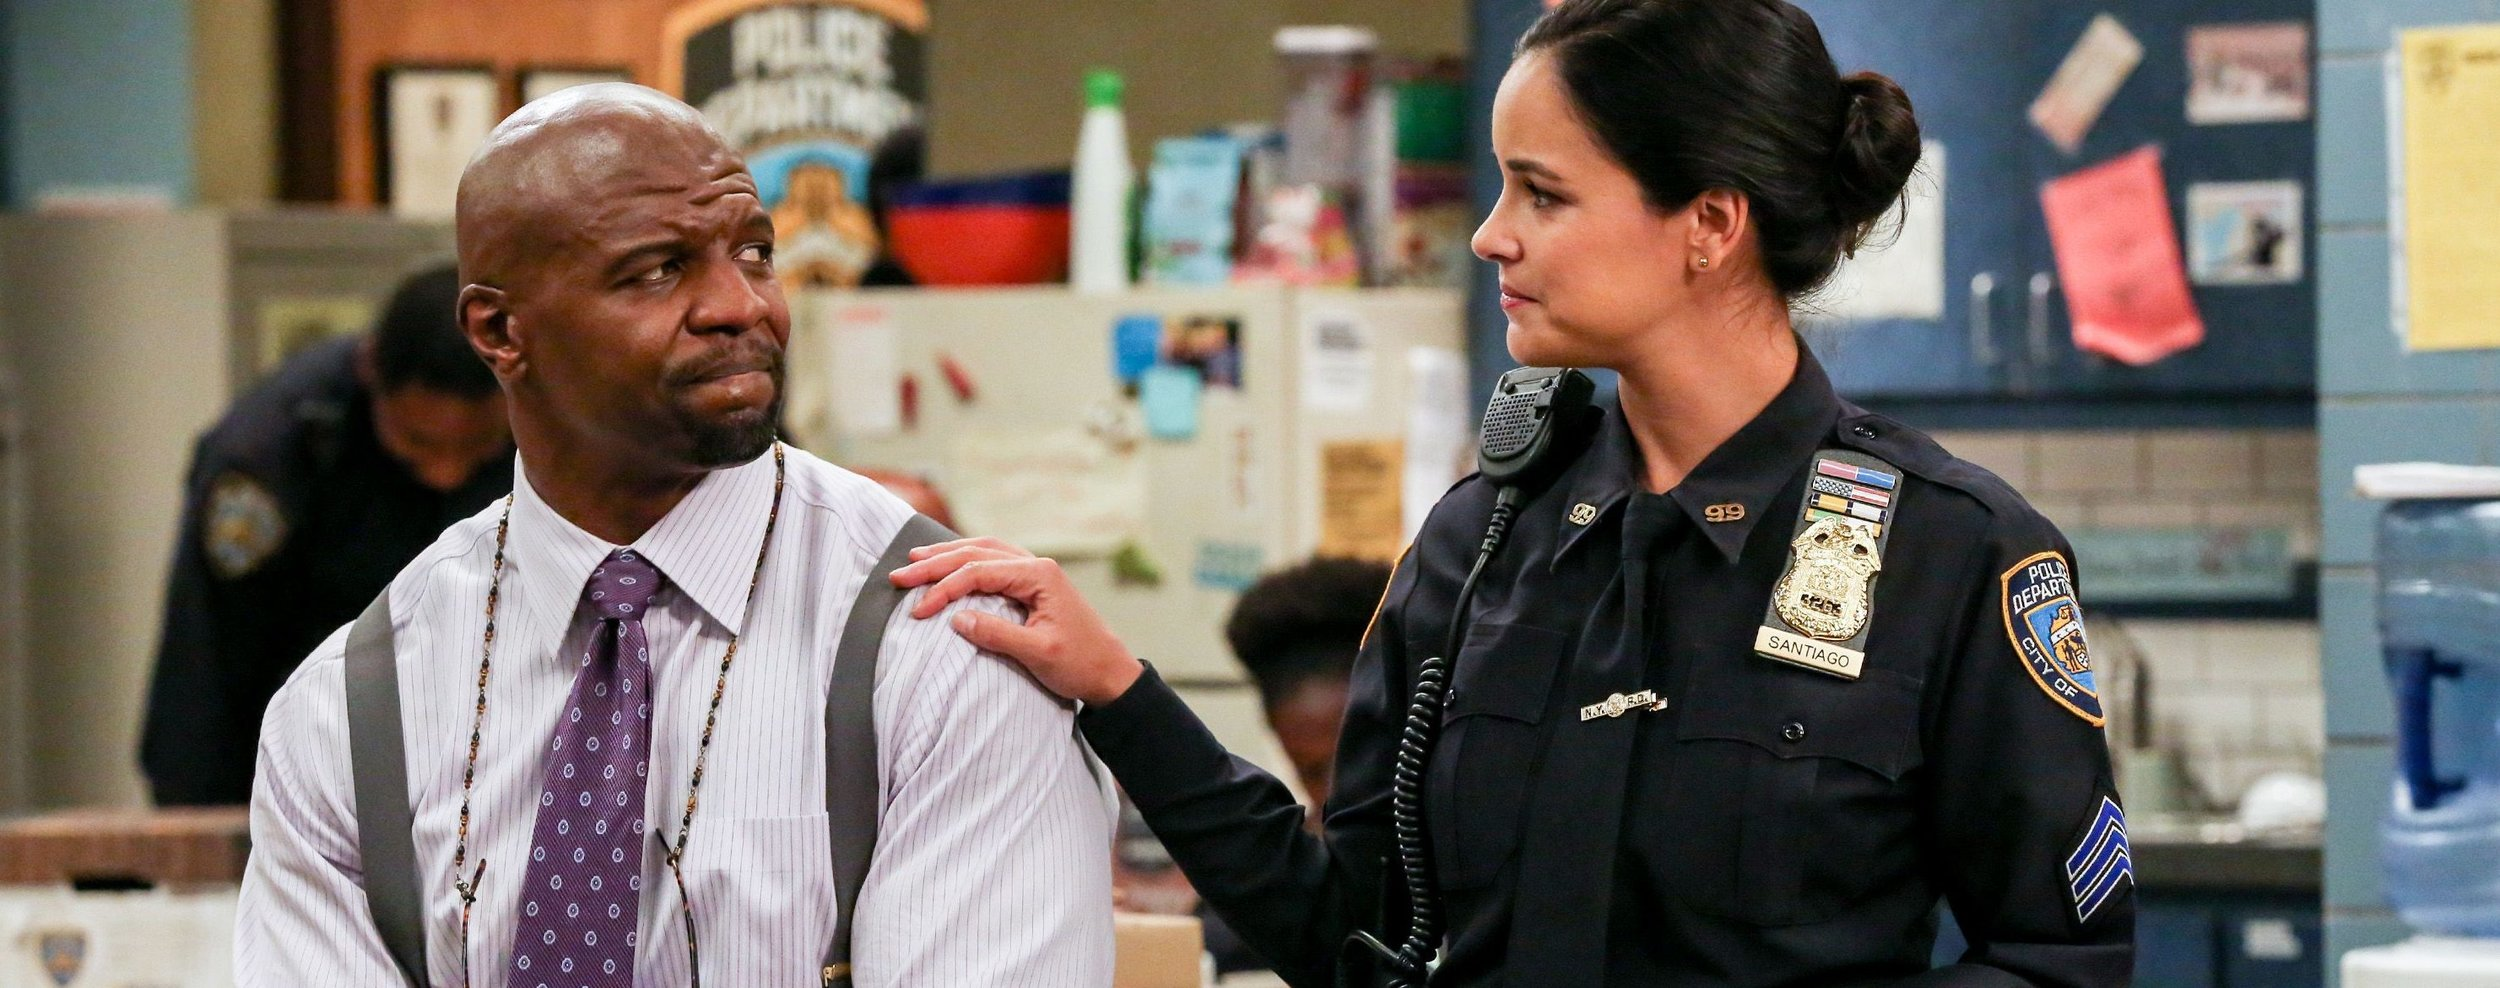 Terry Crewes and Melissa Fumero as Sergeant Terry Jeffords and Detective Amy Santiago in  Brooklyn 99 .